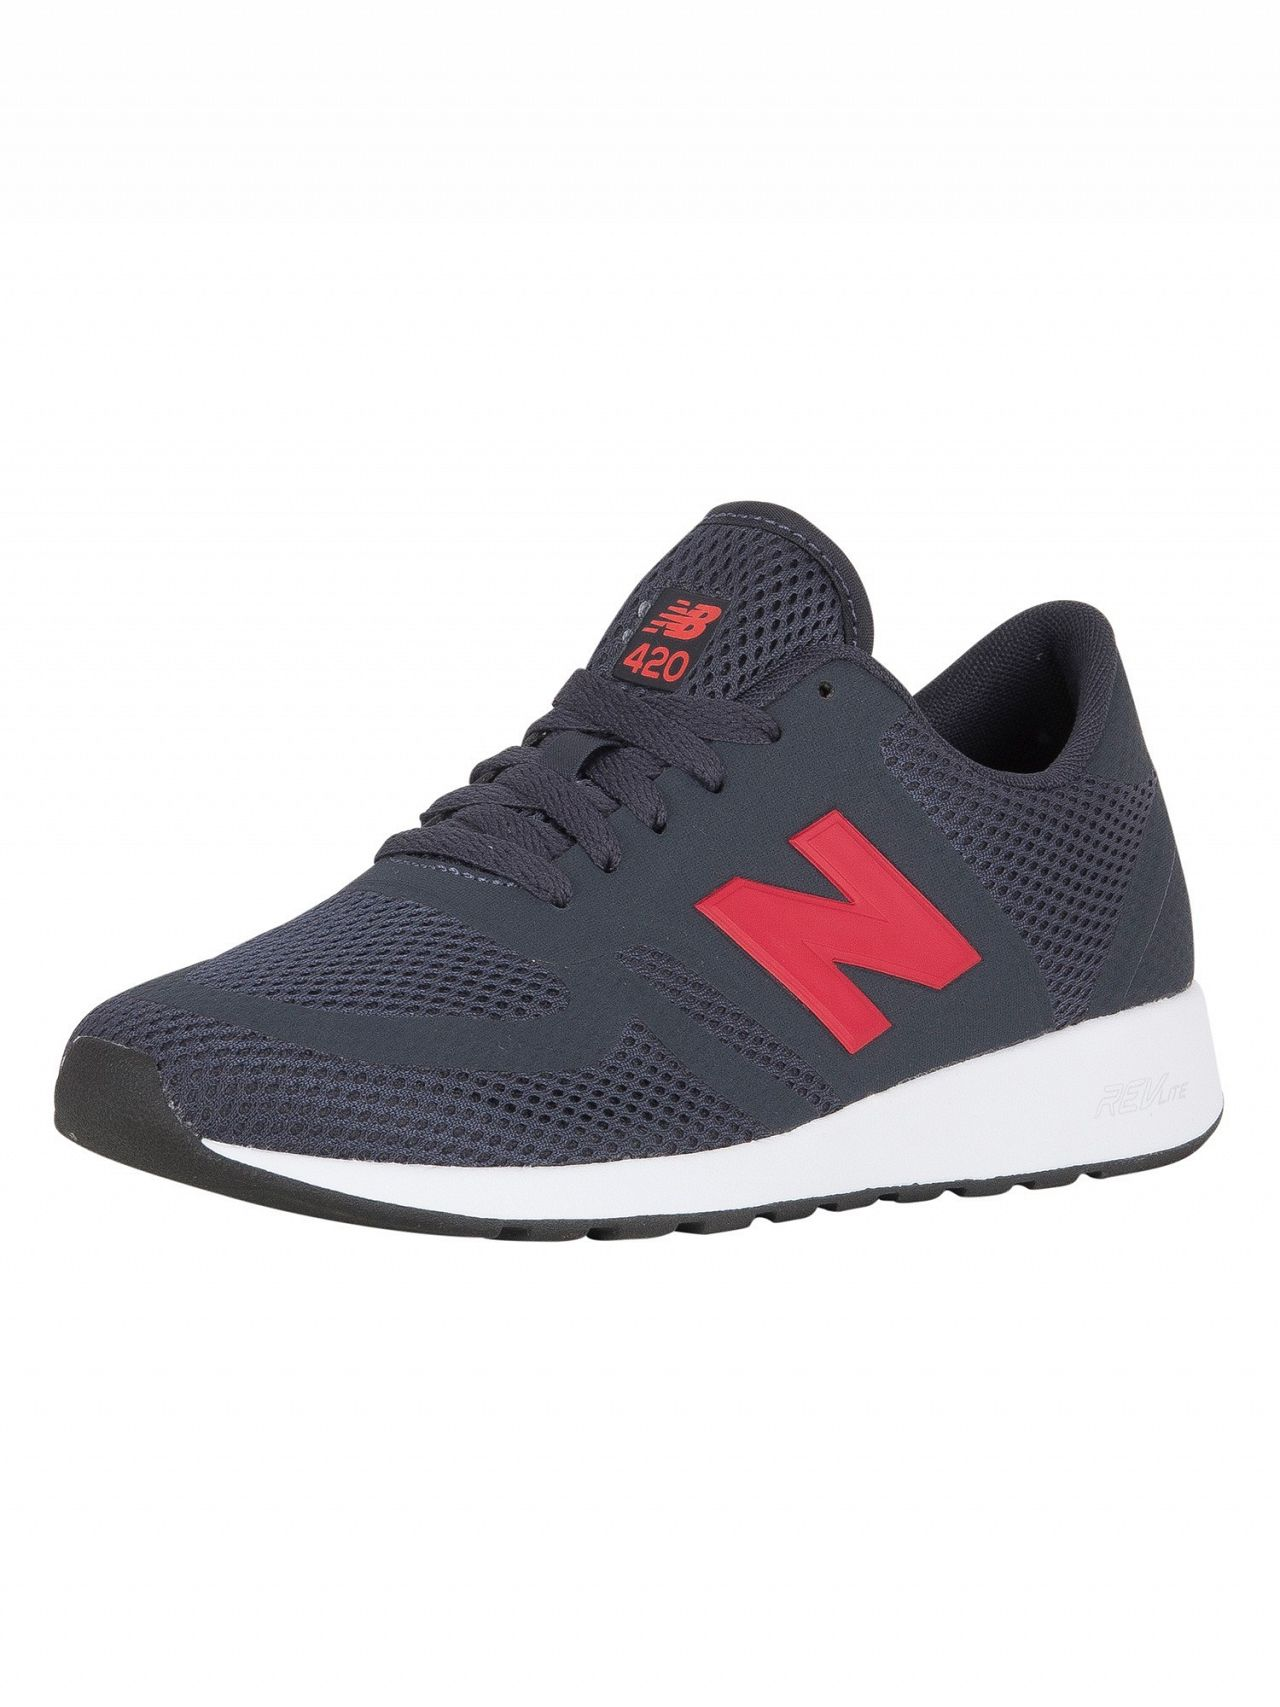 where can i buy new balance 420 navy red bd6bf 3633c